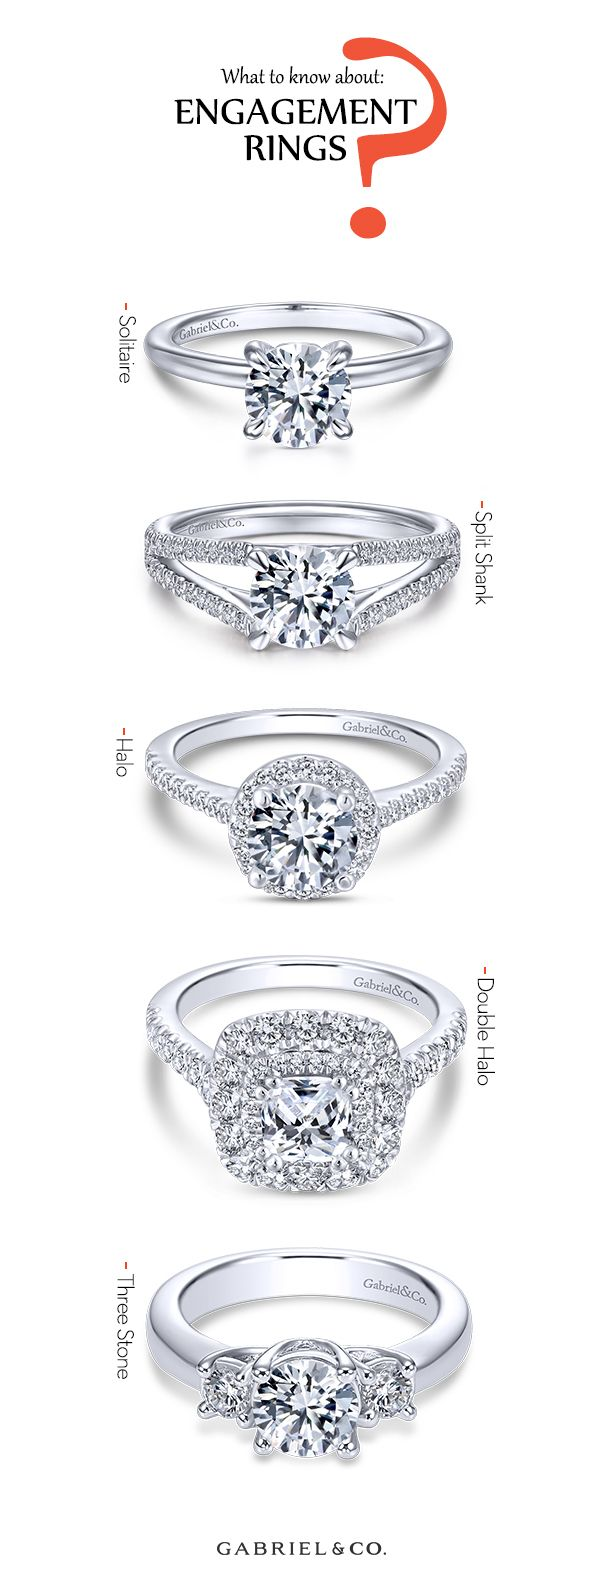 What To Know About Engagement Rings Engagement Ring Types Diamond Wedding Bands Dream Engagement Rings